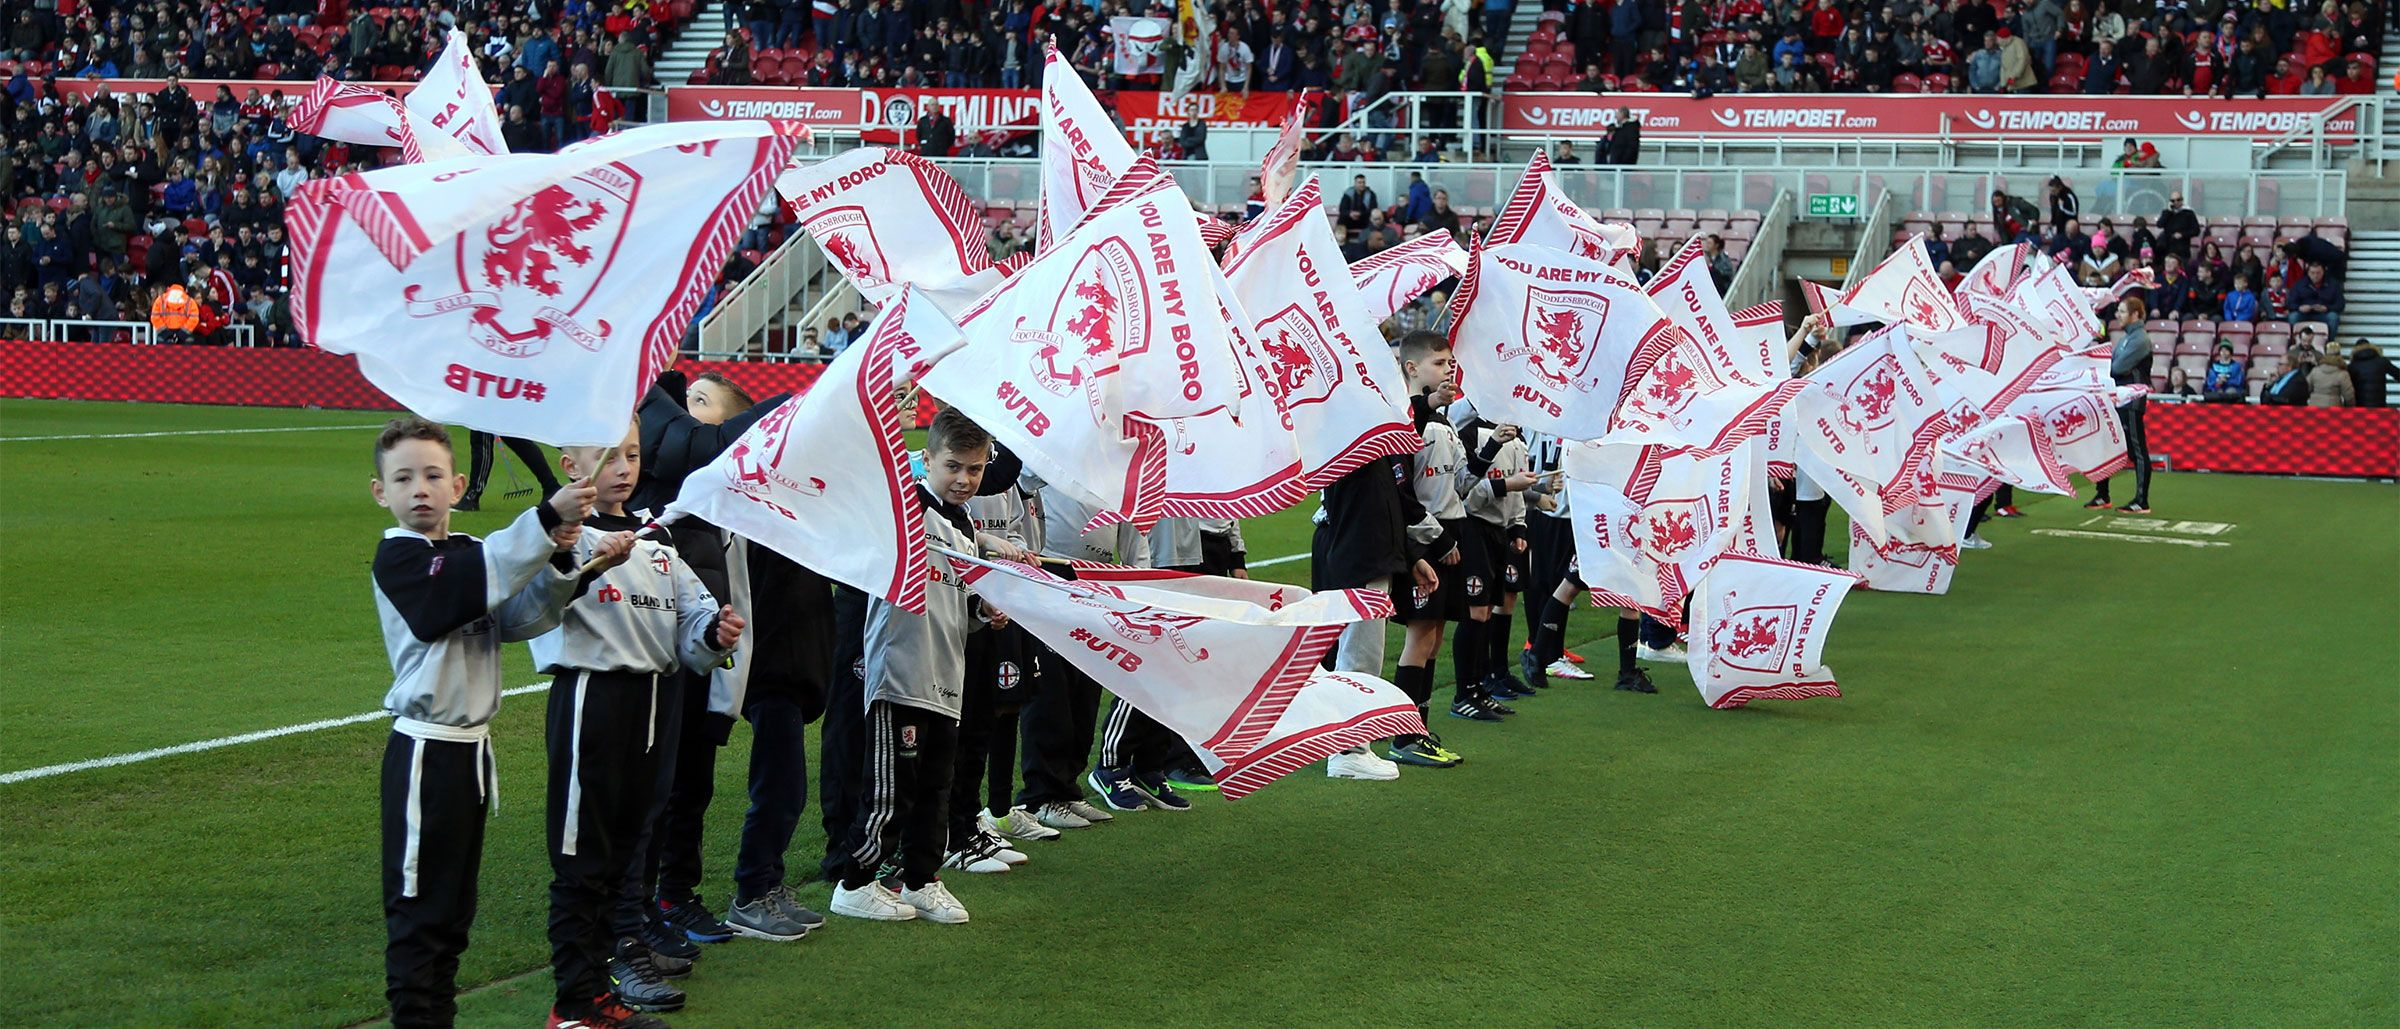 Kids in the Matchday Squad scheme wave flags pitchside